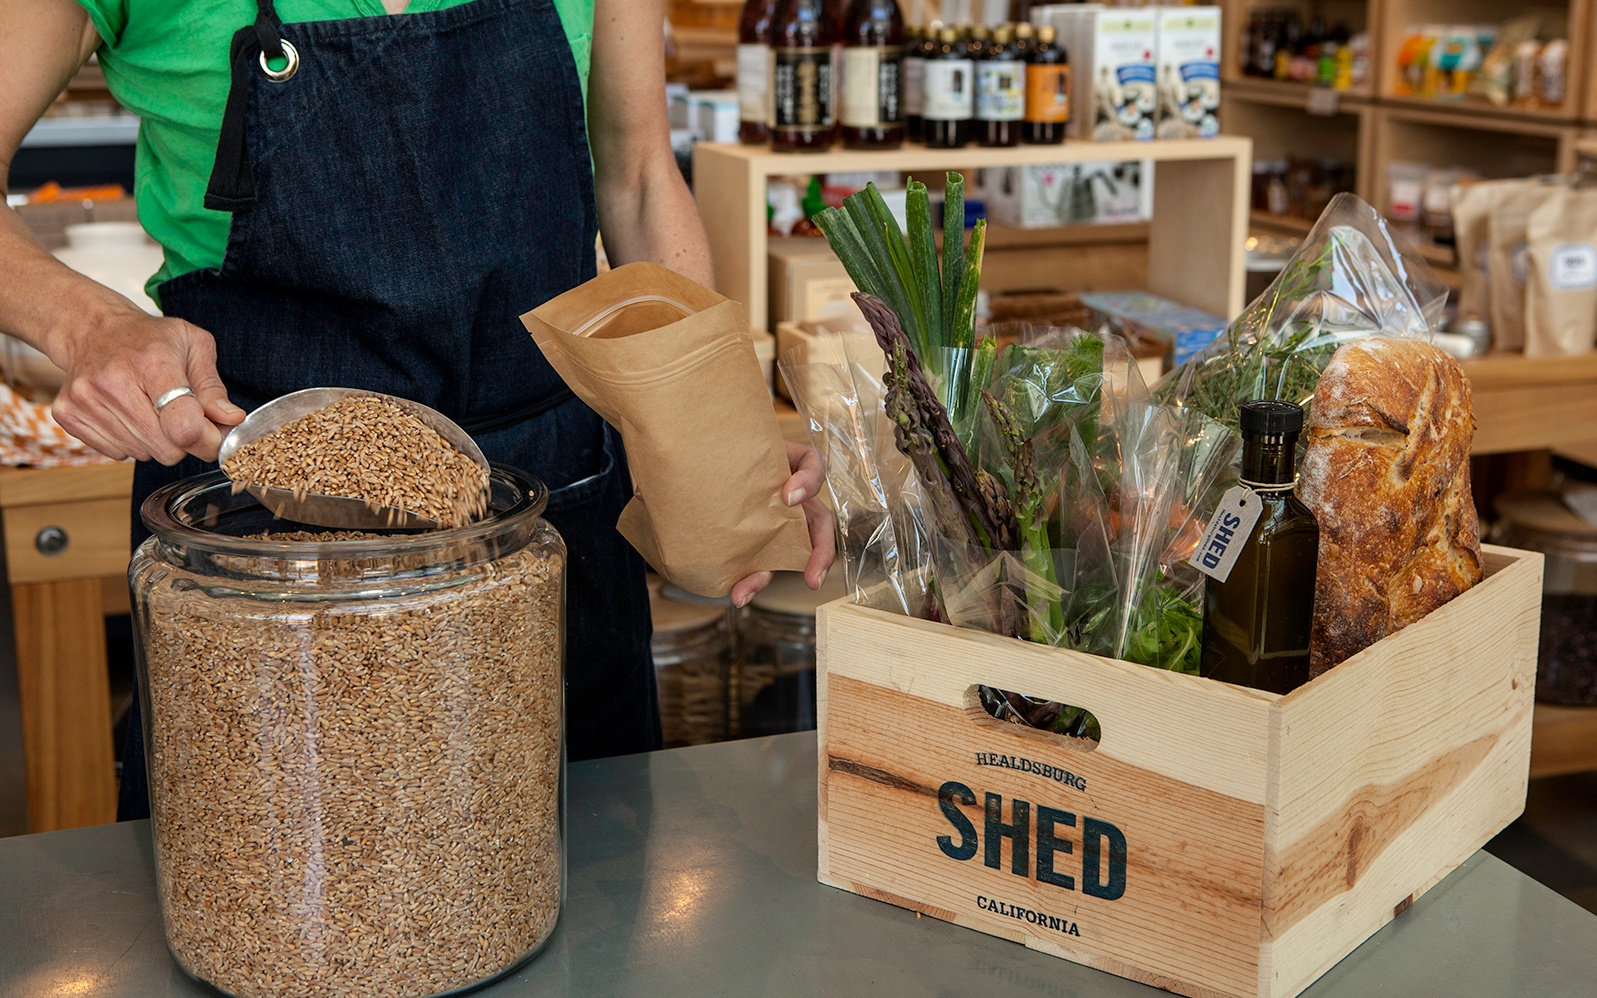 SHED Farmer's Market Tours